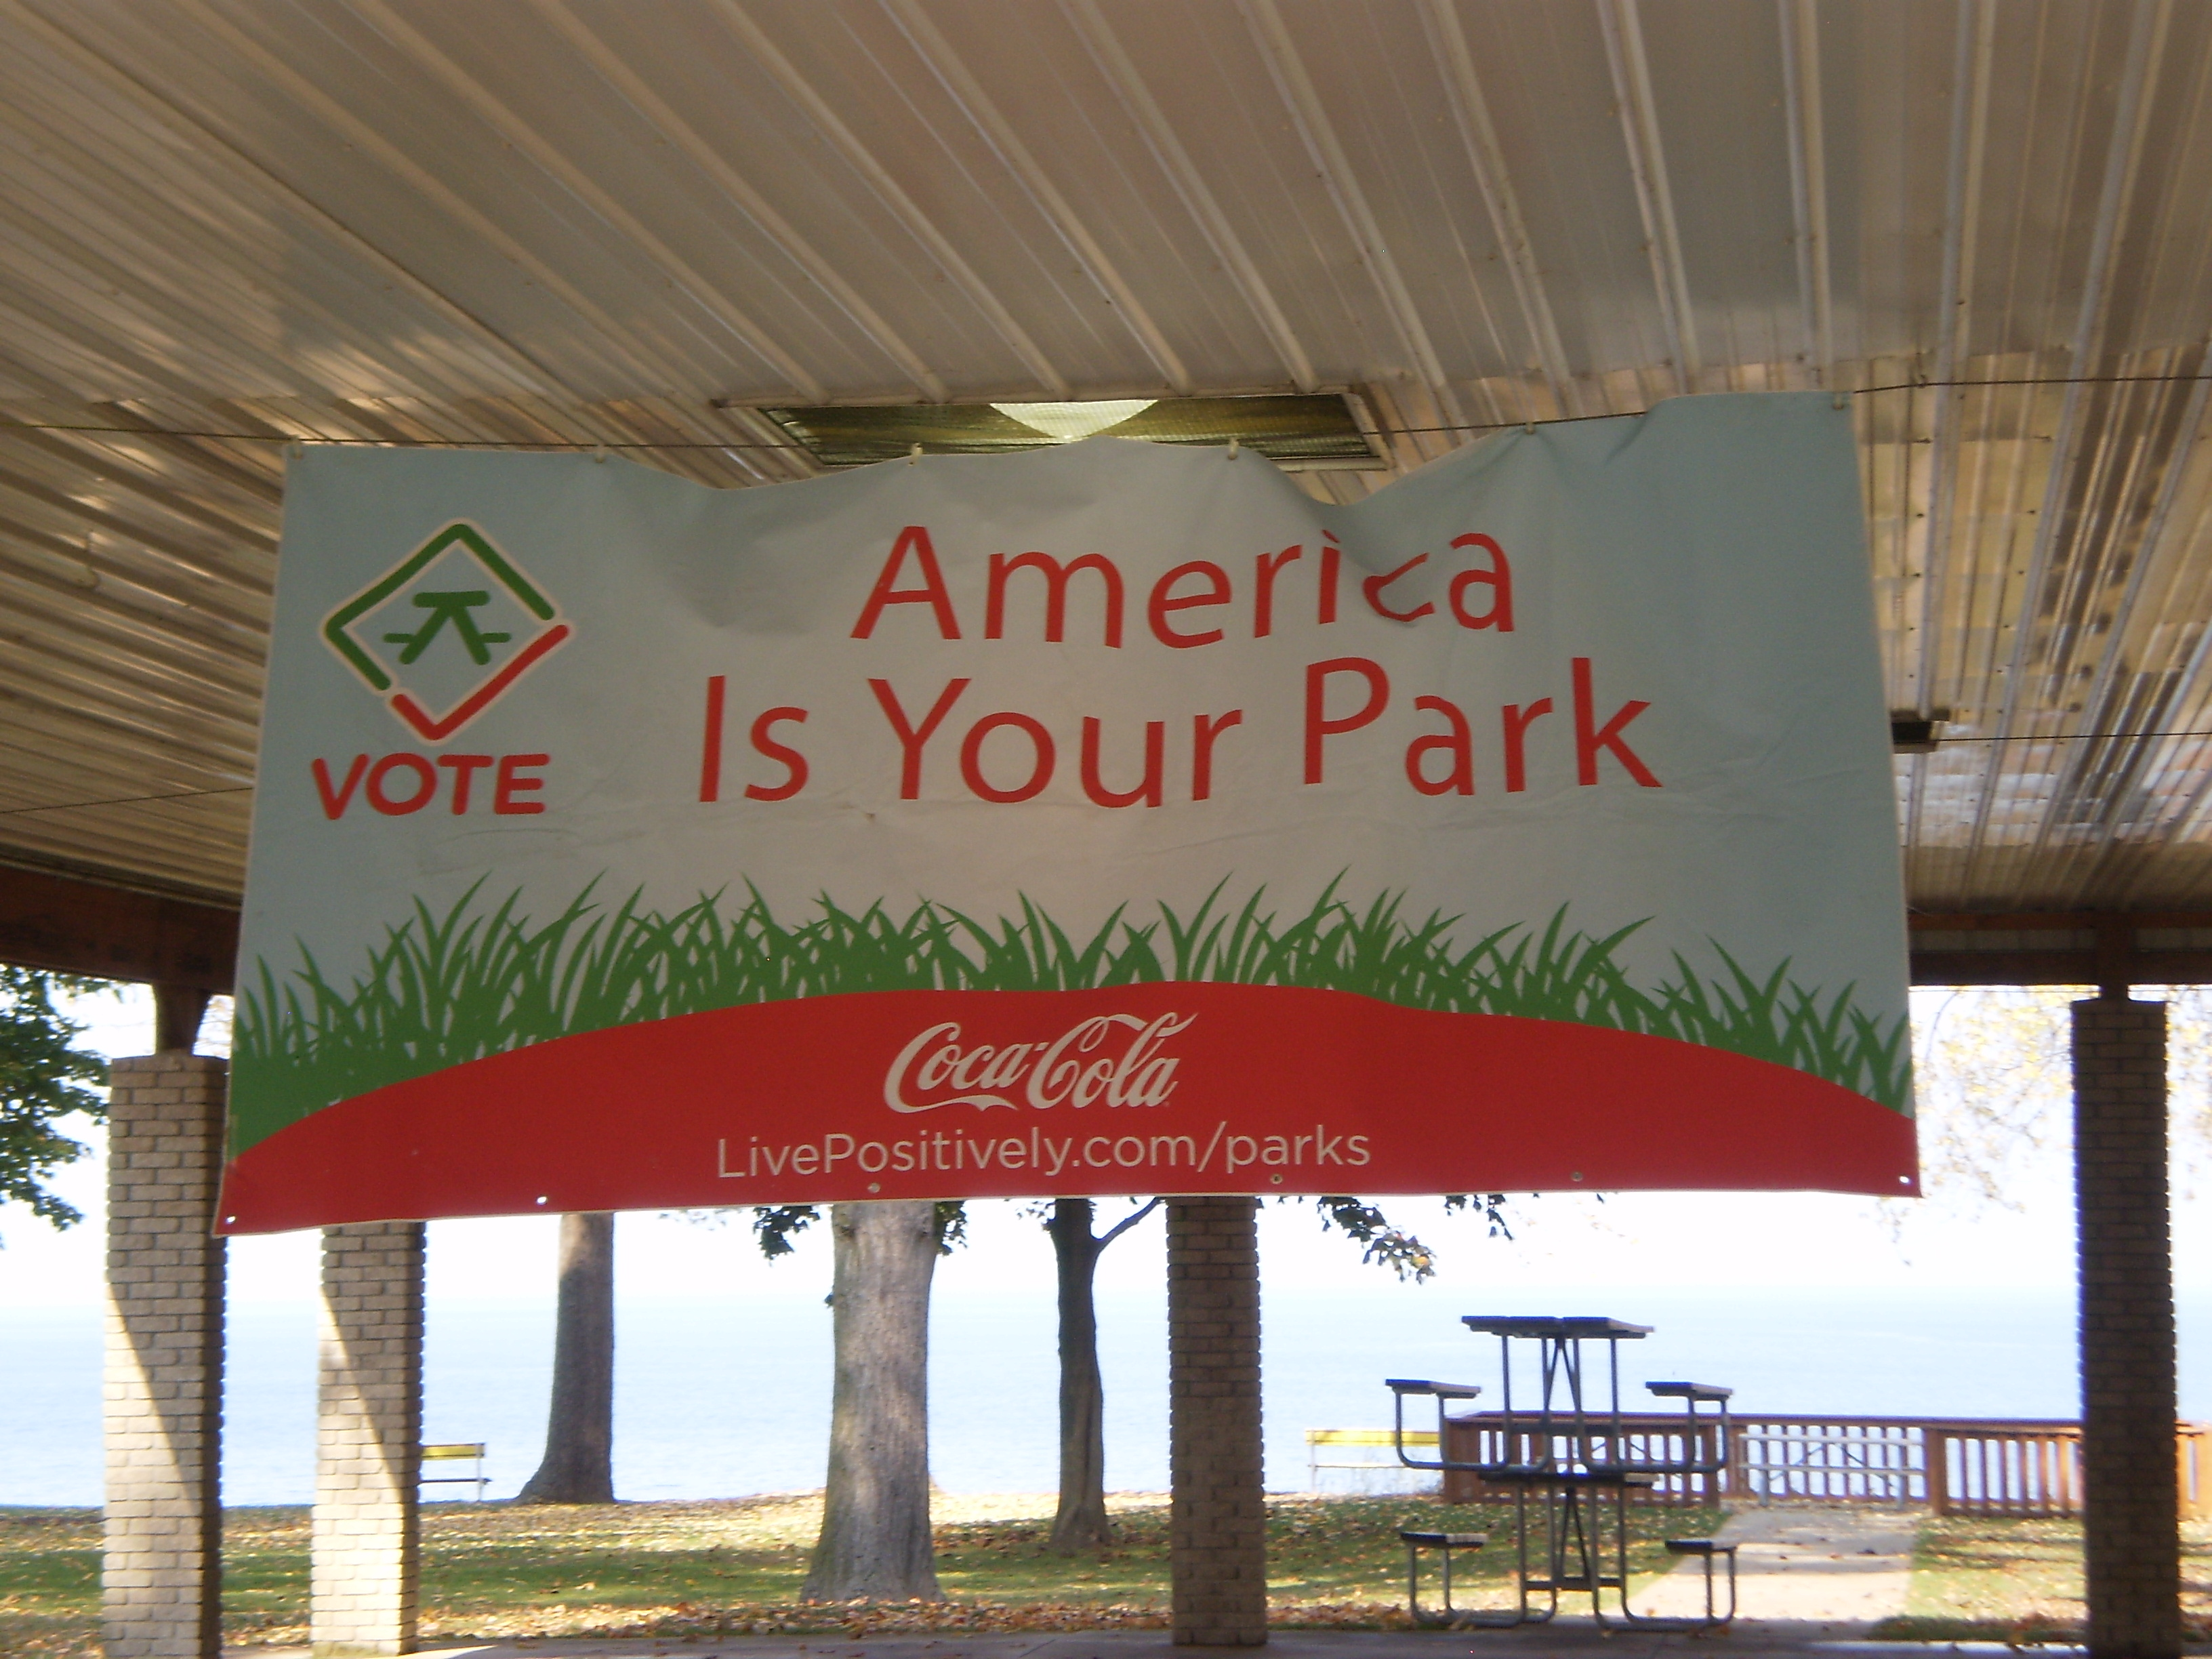 America is your park sign